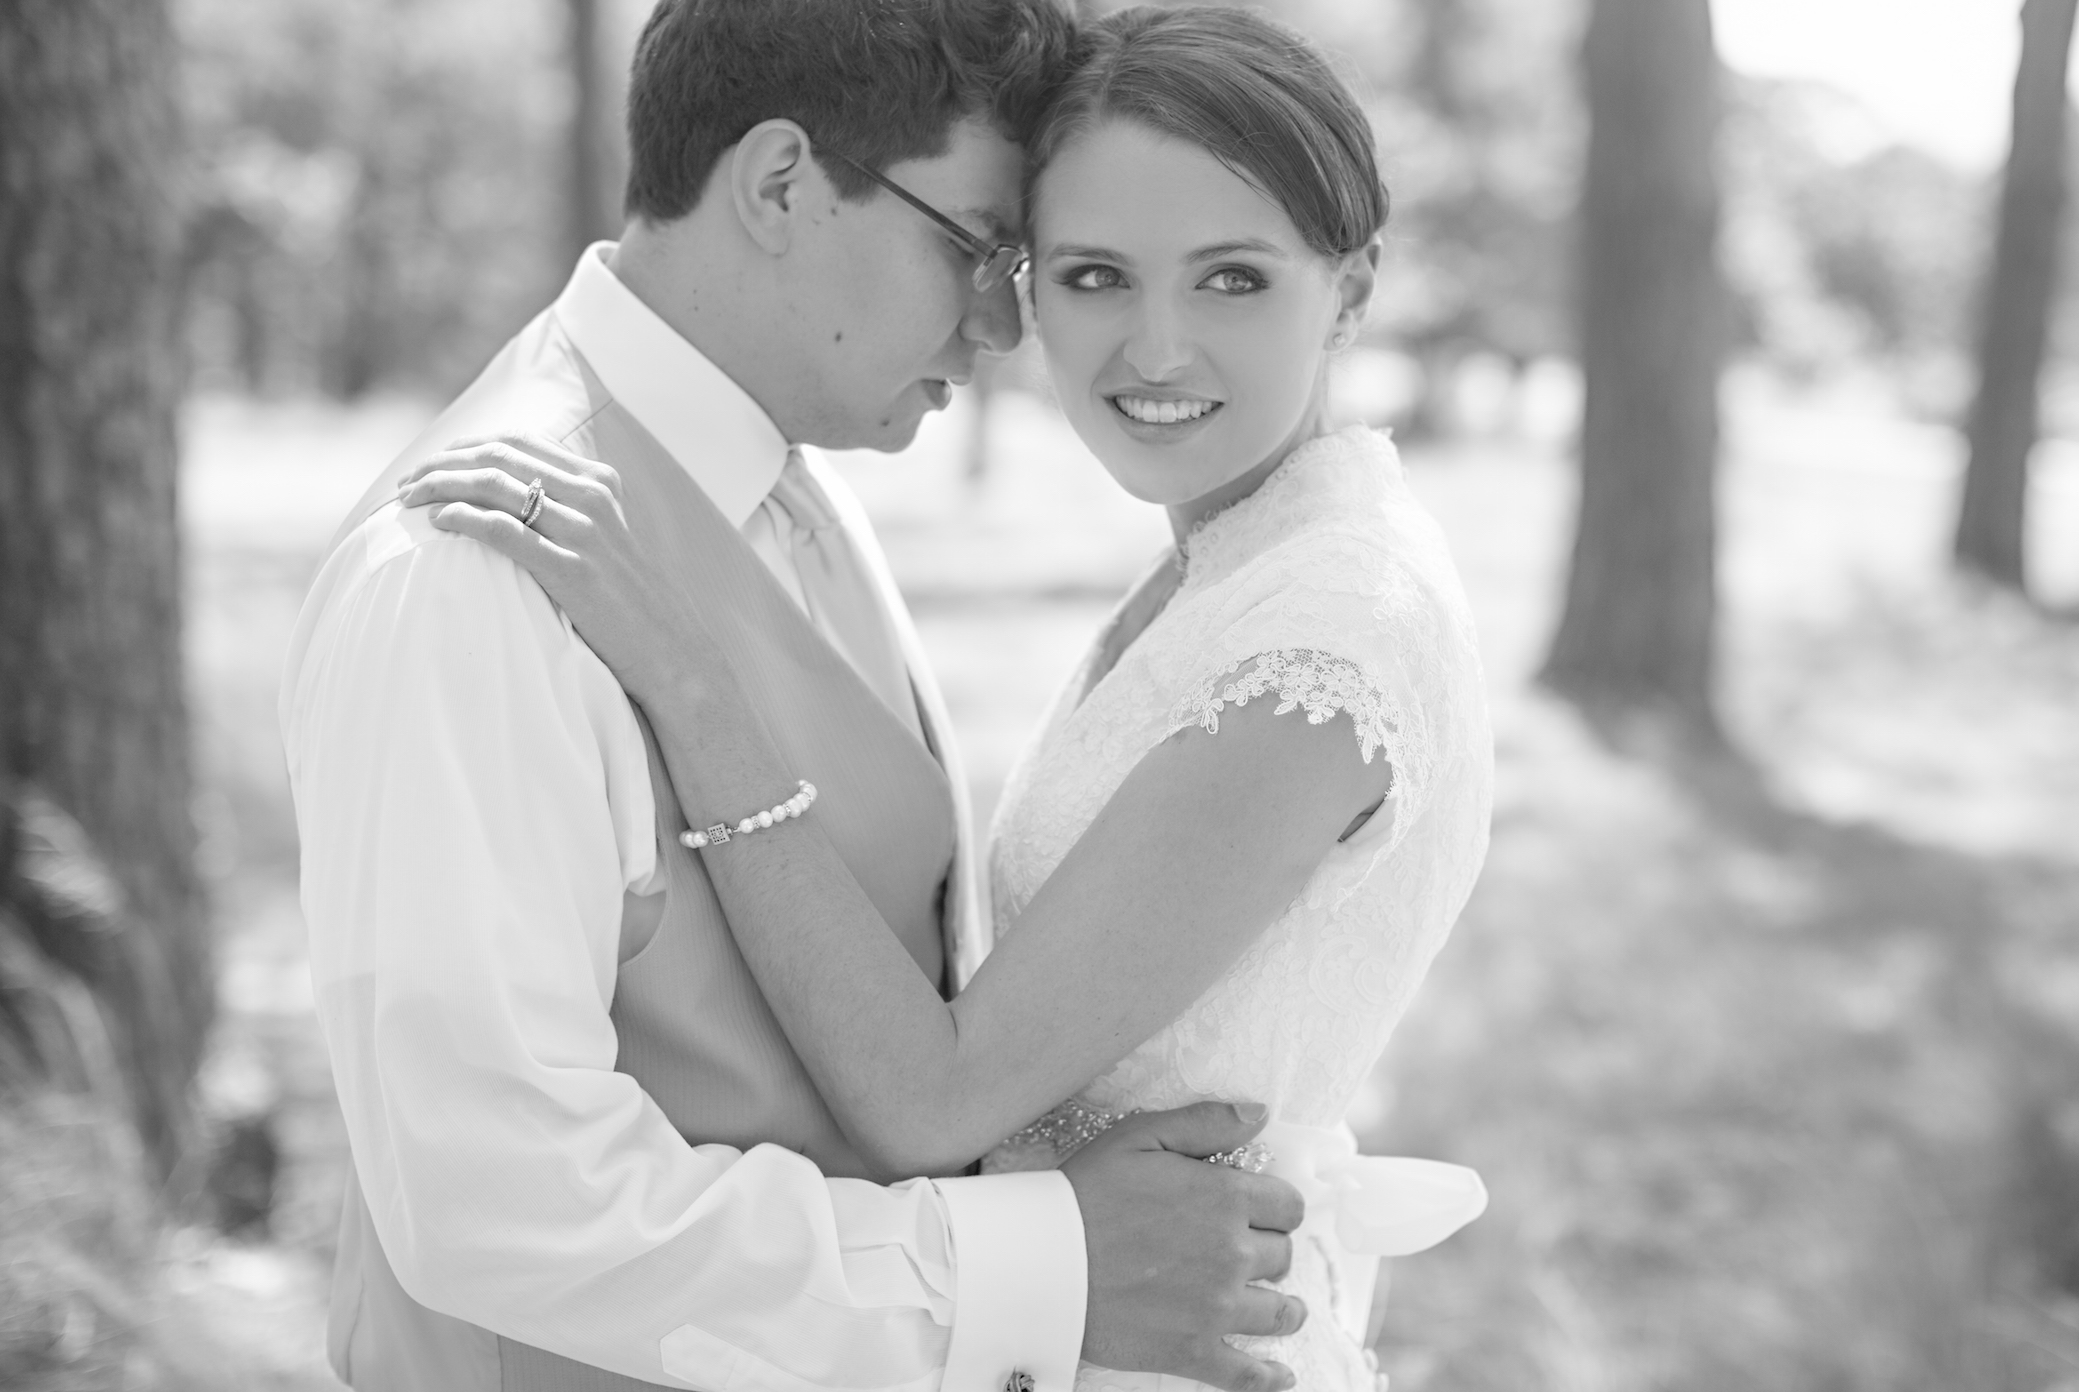 DIY Wedding Bride and Groom Photos